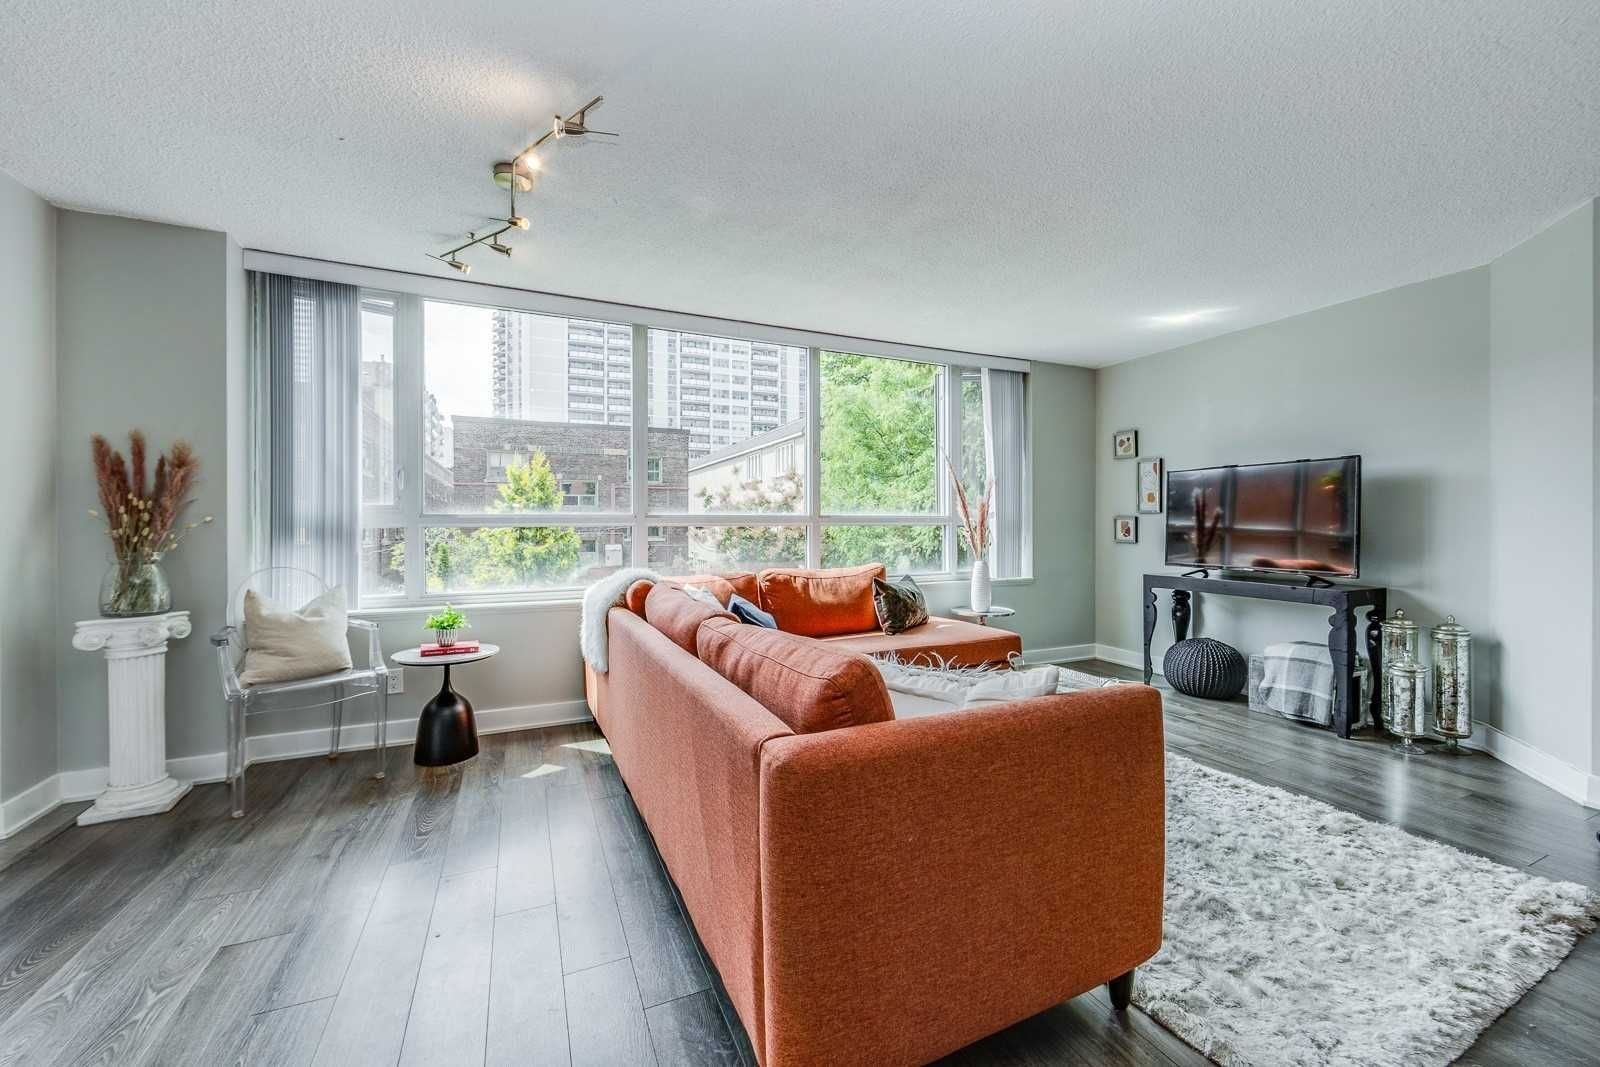 55 Wellesley St E, unit 202 for sale in Toronto - image #2